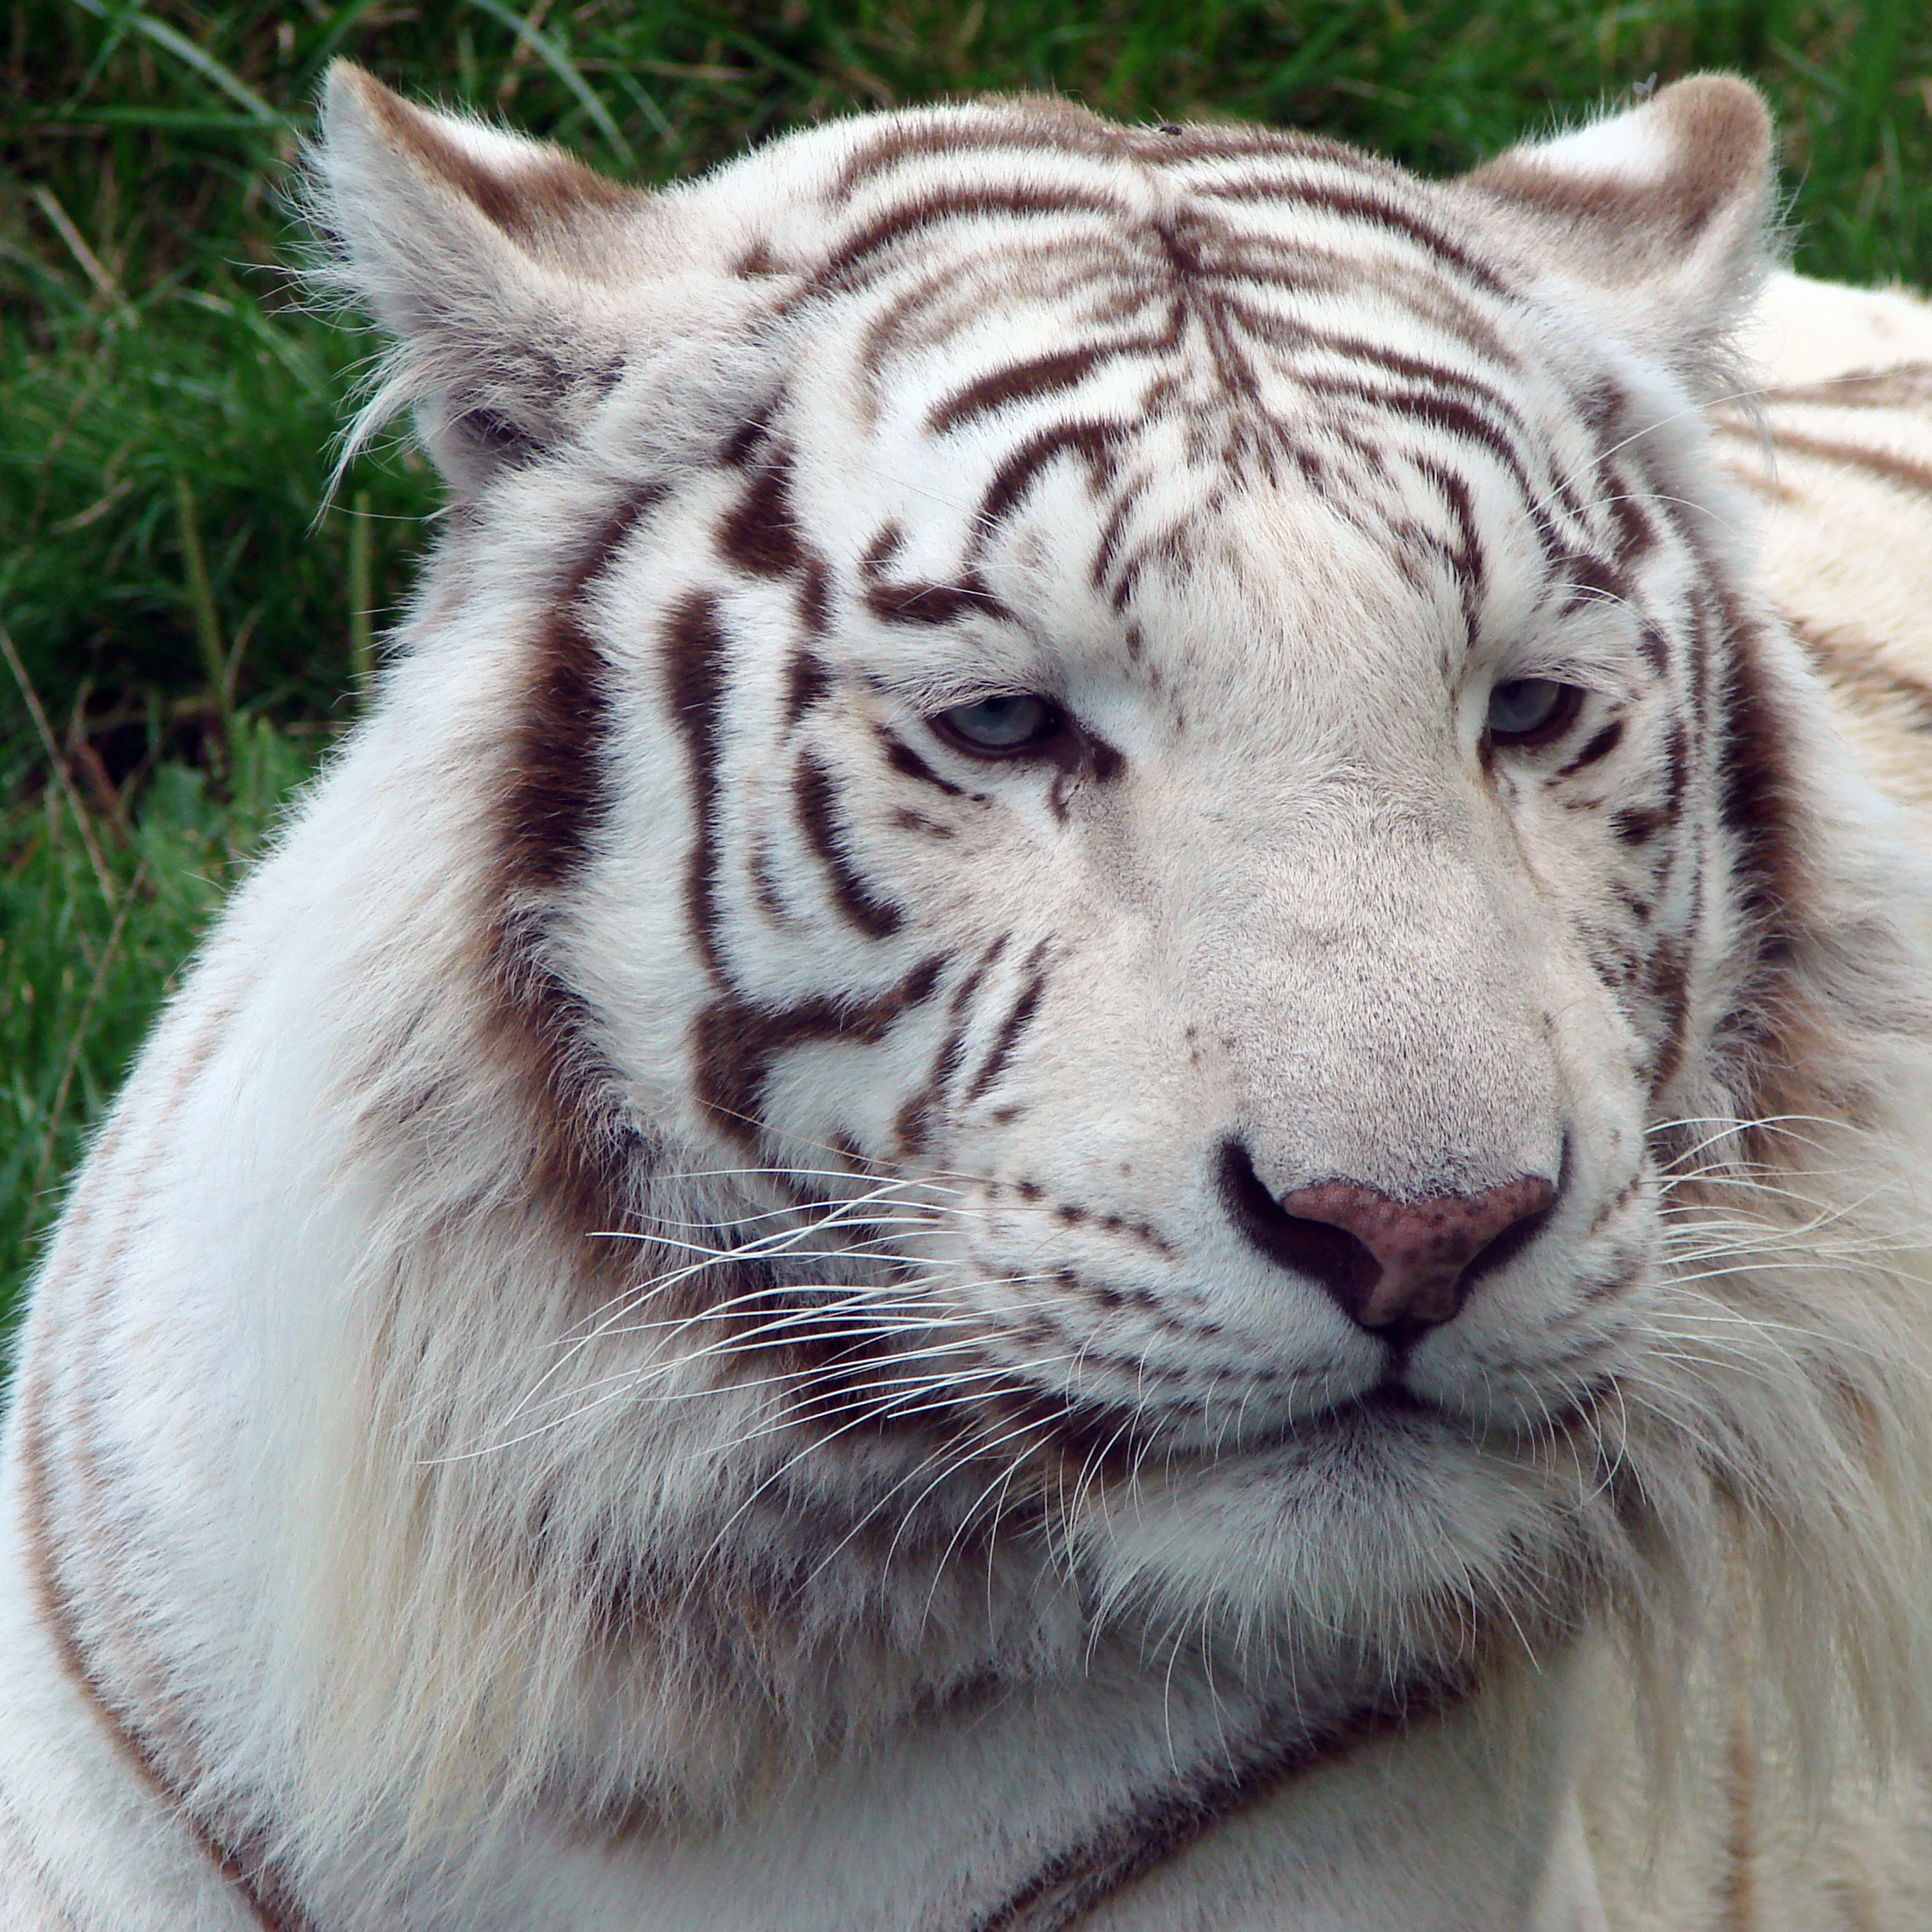 Are Tigers Dogs Or Cats